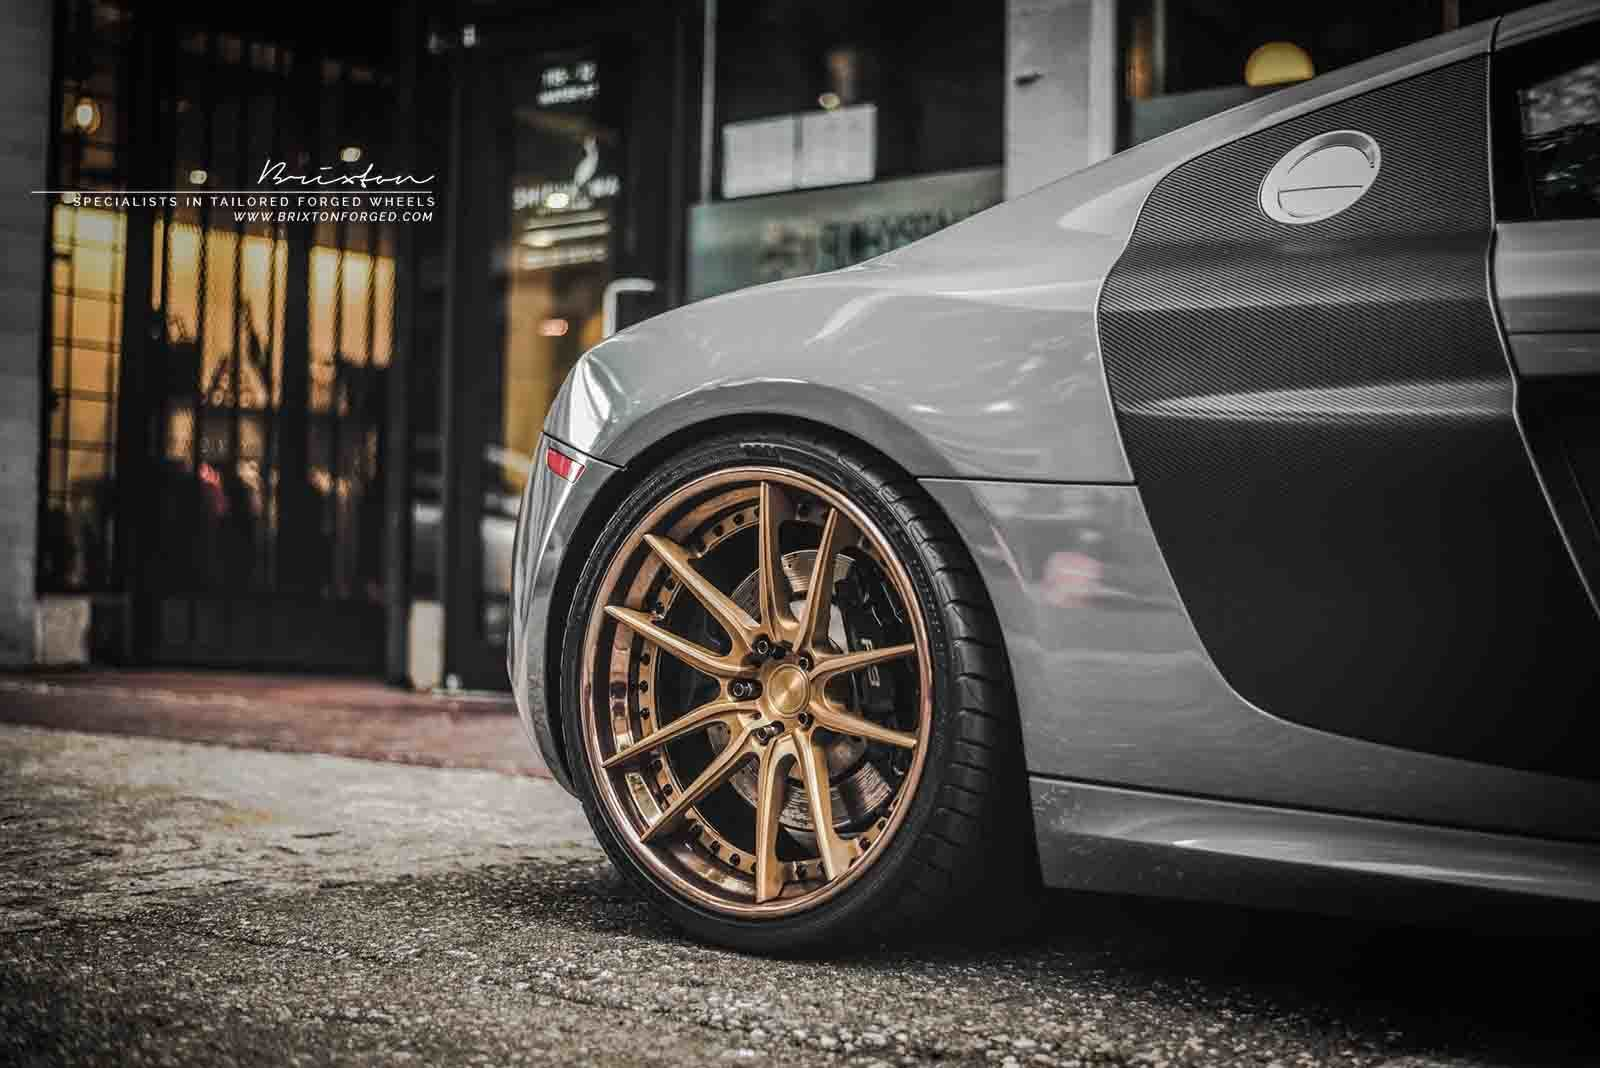 images-products-1-2304-232974592-brixton-forged-m53-targa-series-audi-r8-v10-grey-20-inch-super-concave-3-piece-brushed-bronze-06.jpg